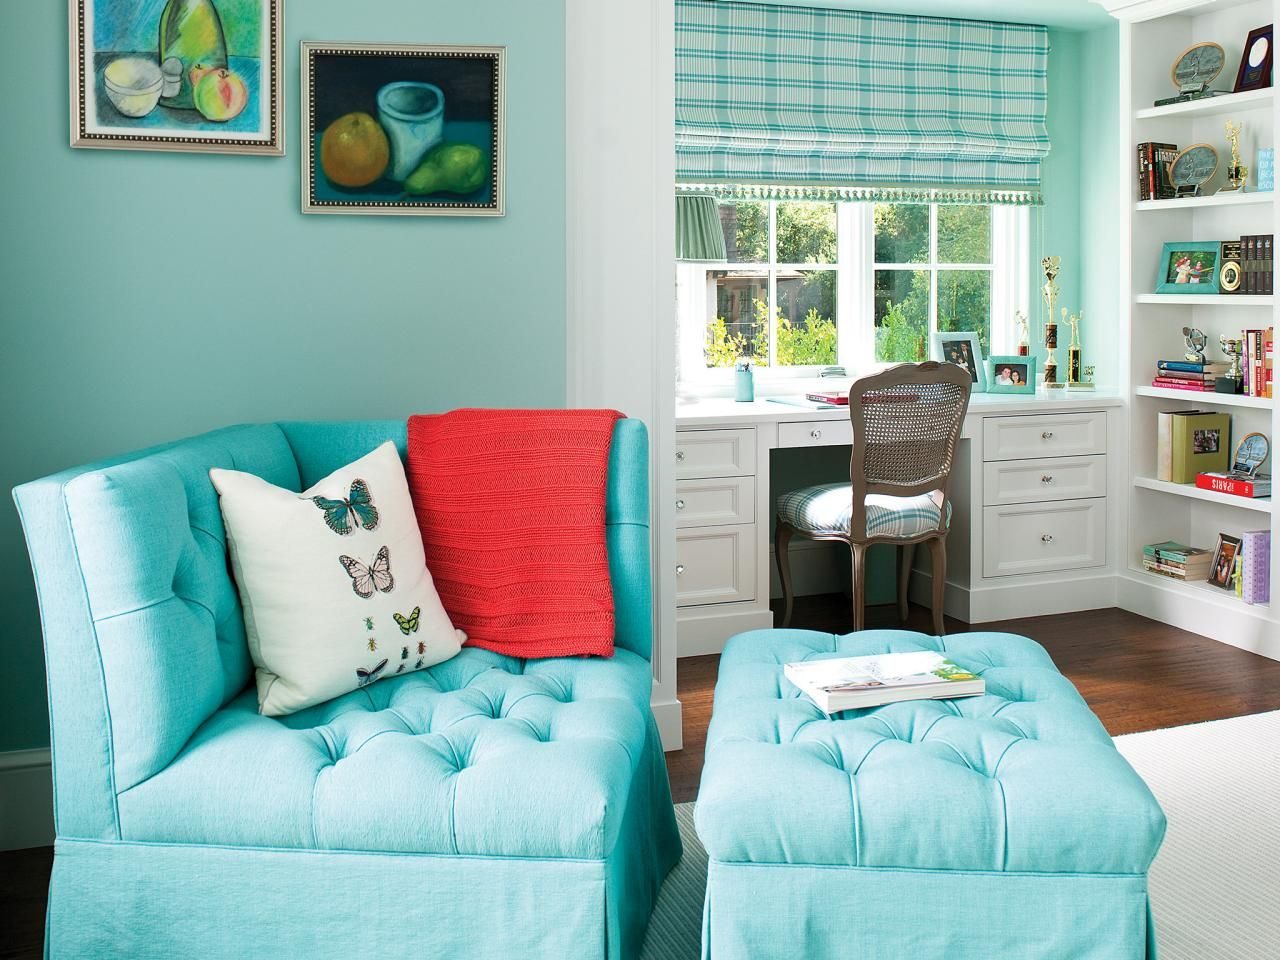 Teen Bedroom Colors teenage bedroom color schemes: pictures, options & ideas | hgtv